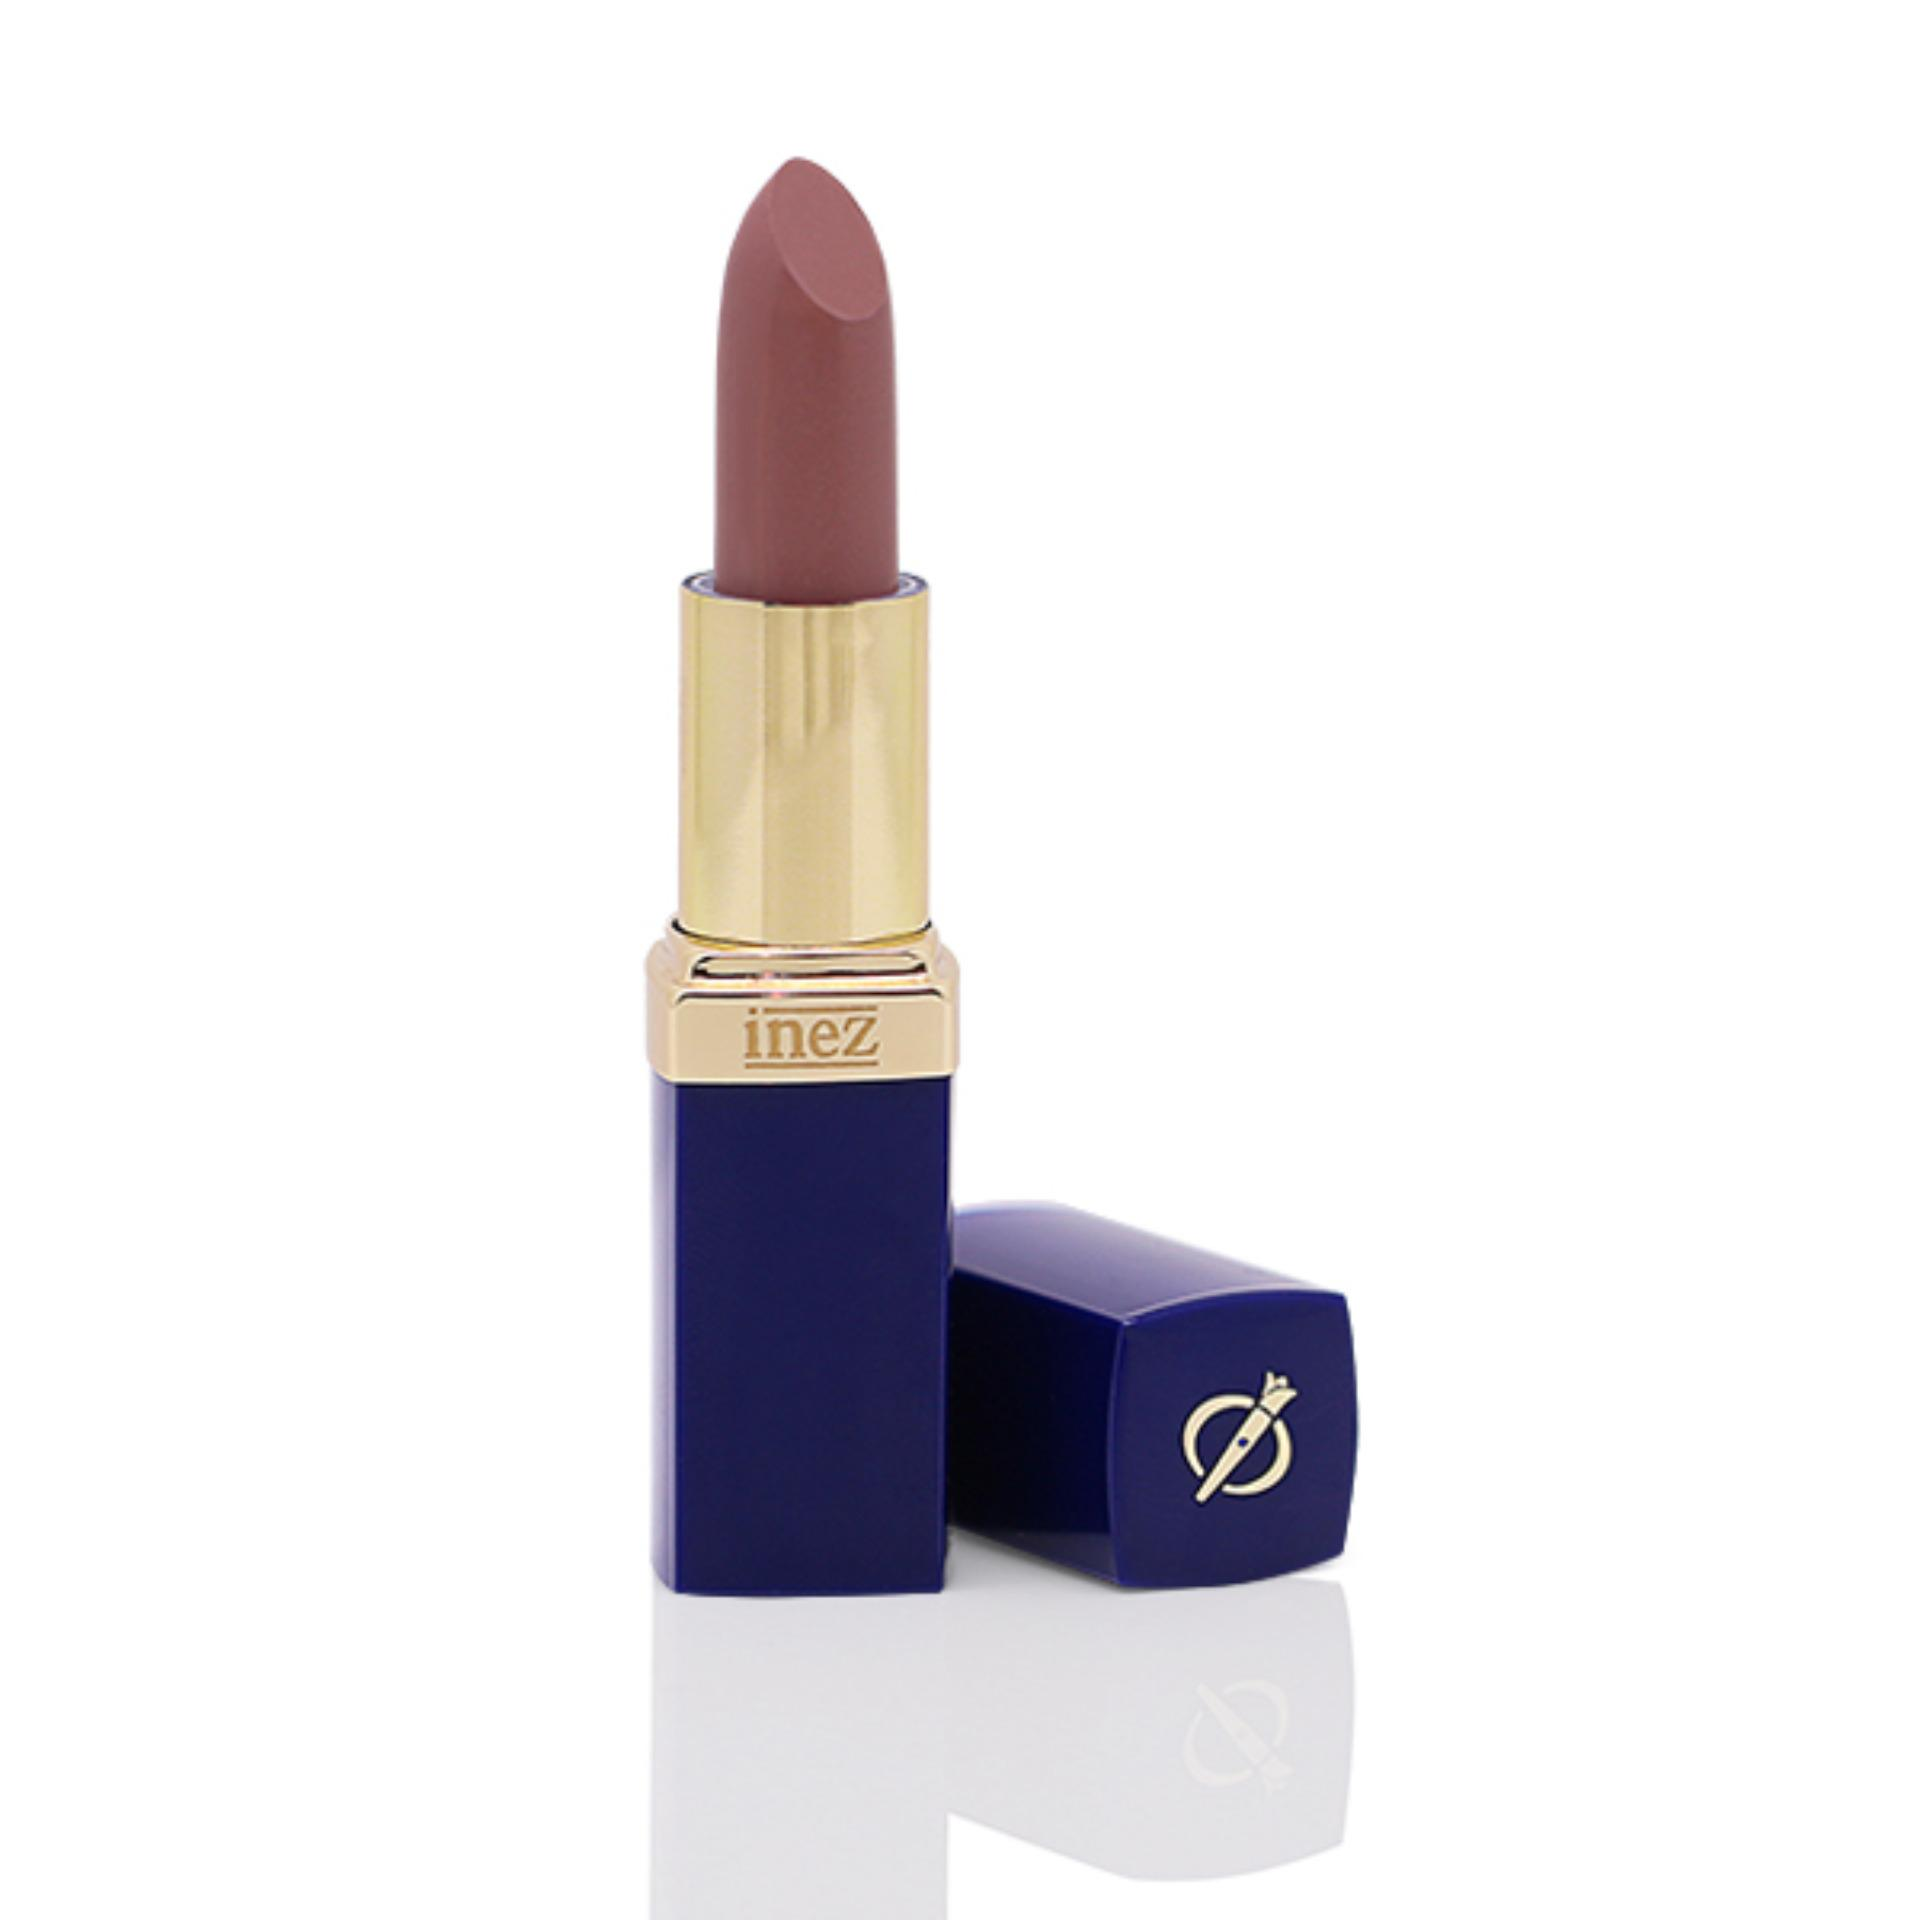 Inez Colour Contour Plus Lipstick - Terracotta